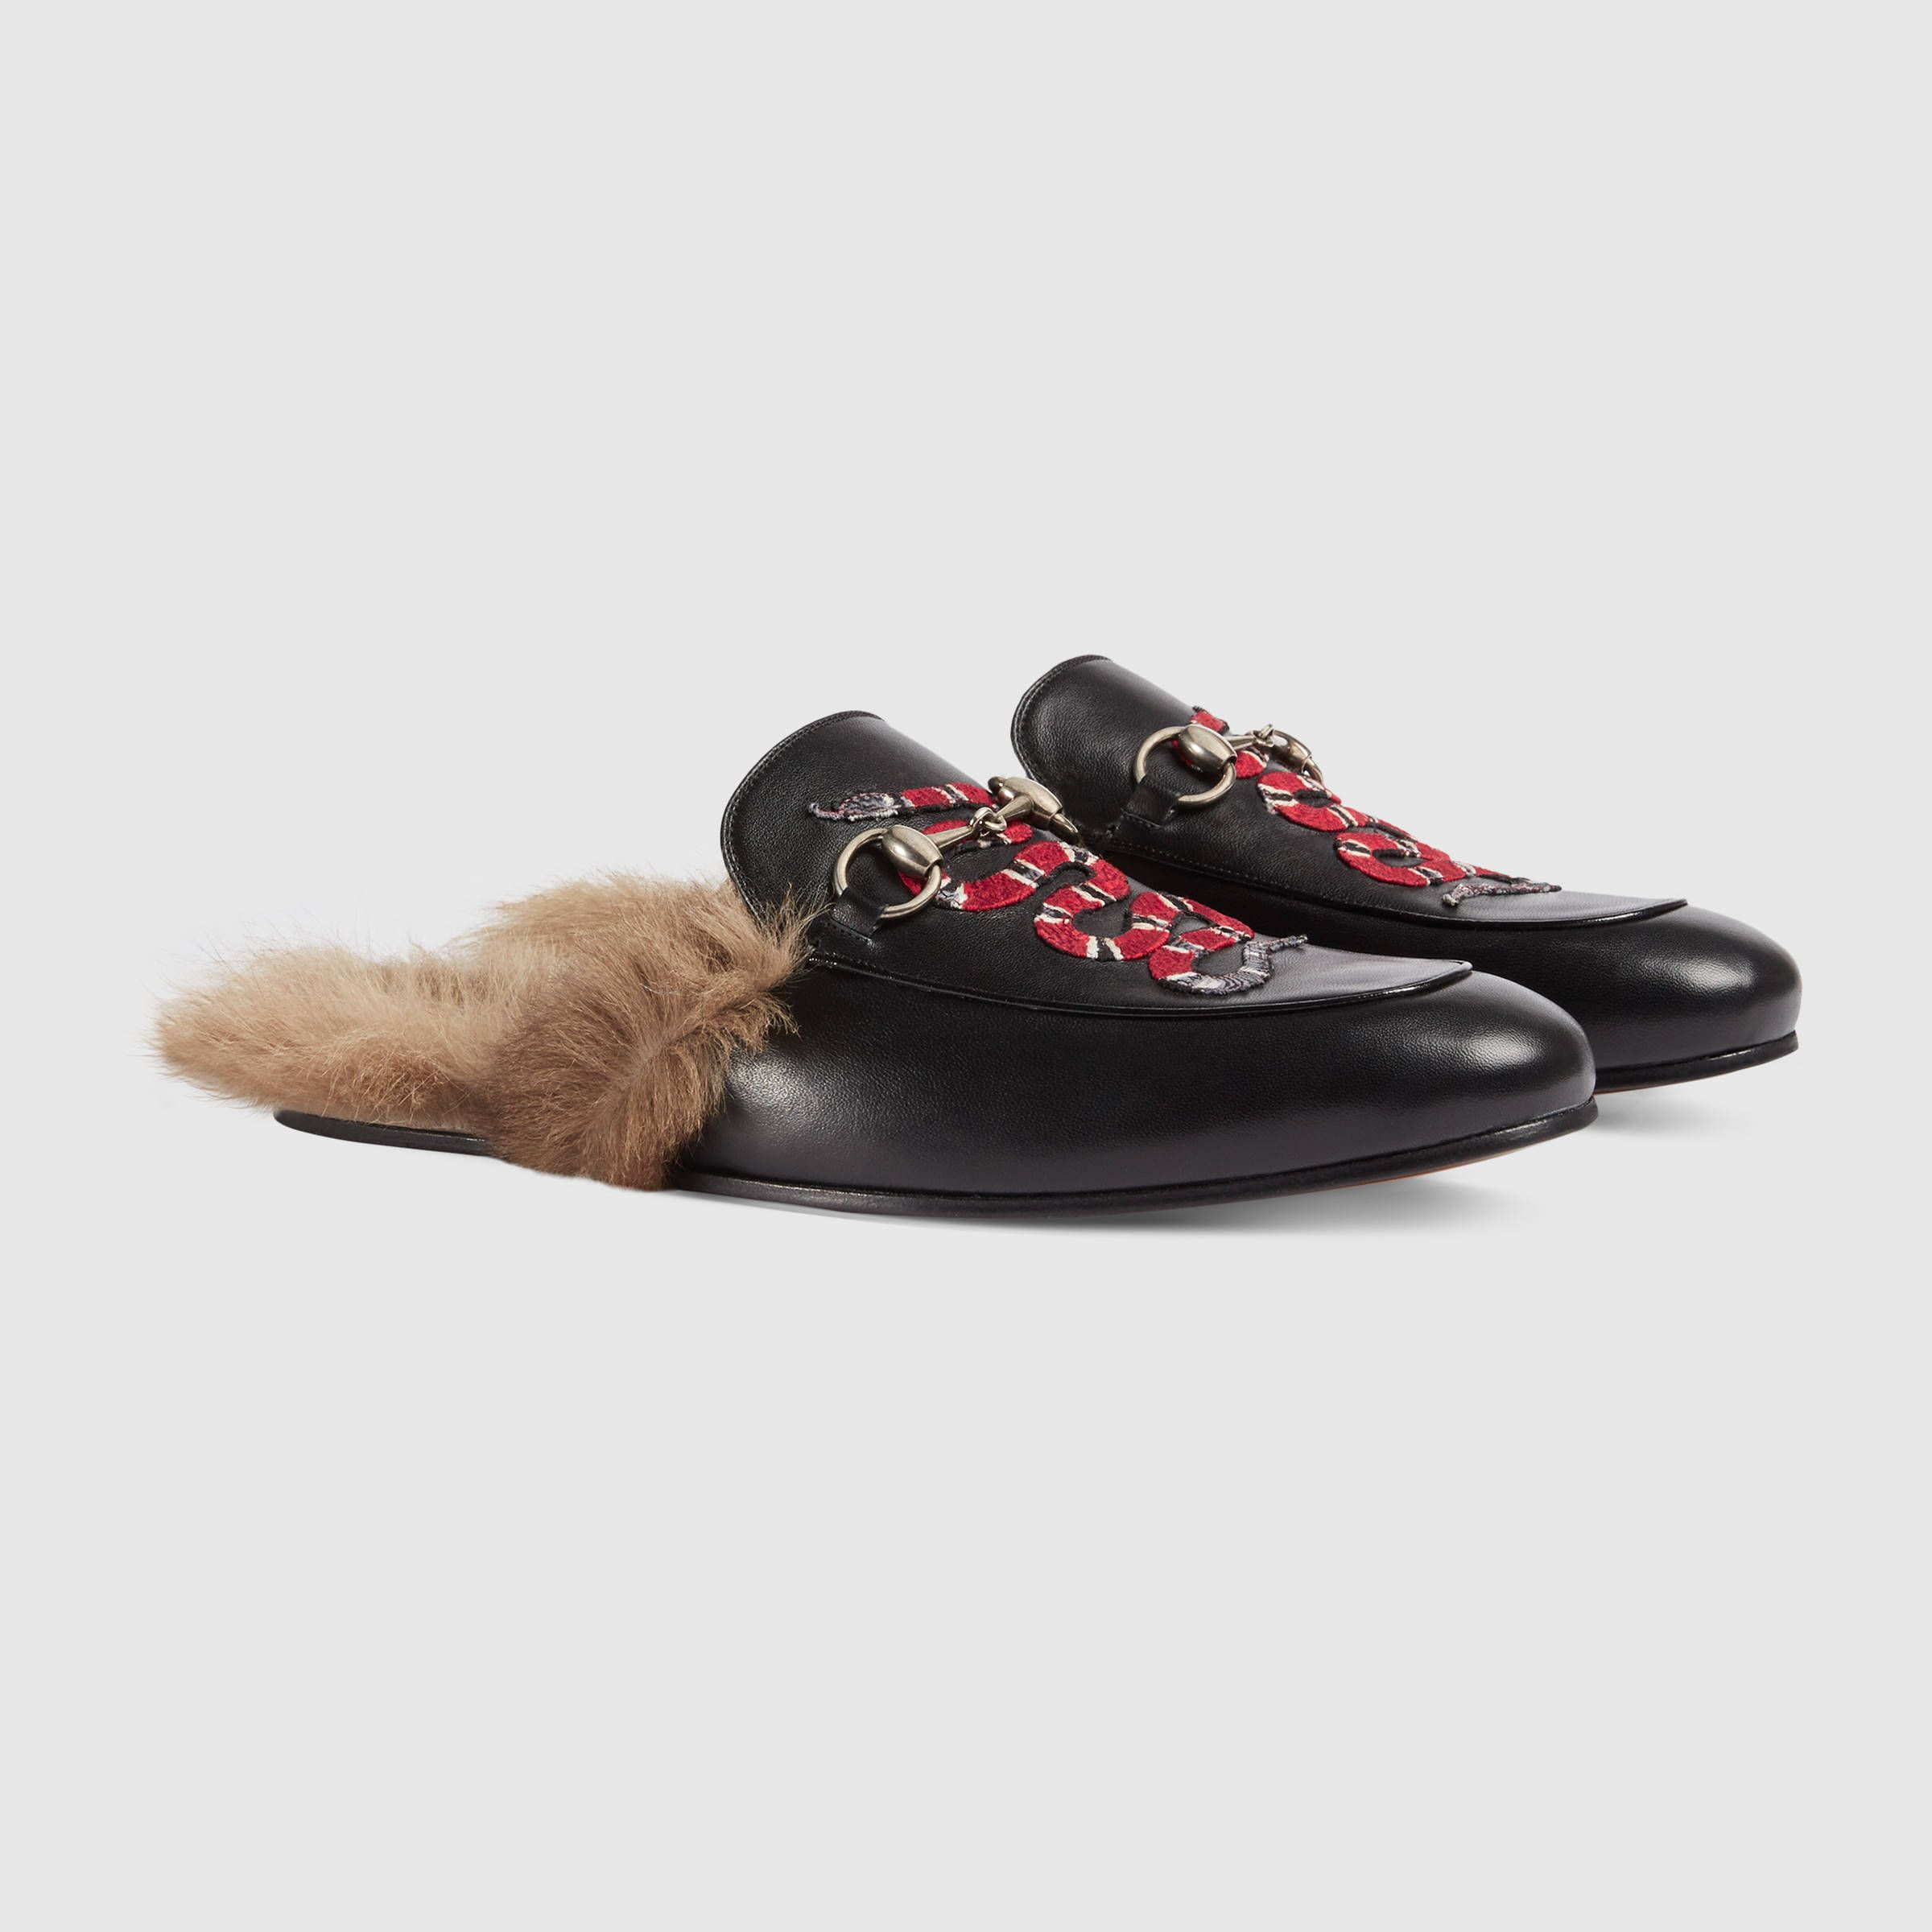 749375810a0 Gucci Men - Princetown leather slipper with snake - 429054DLC501063 ...